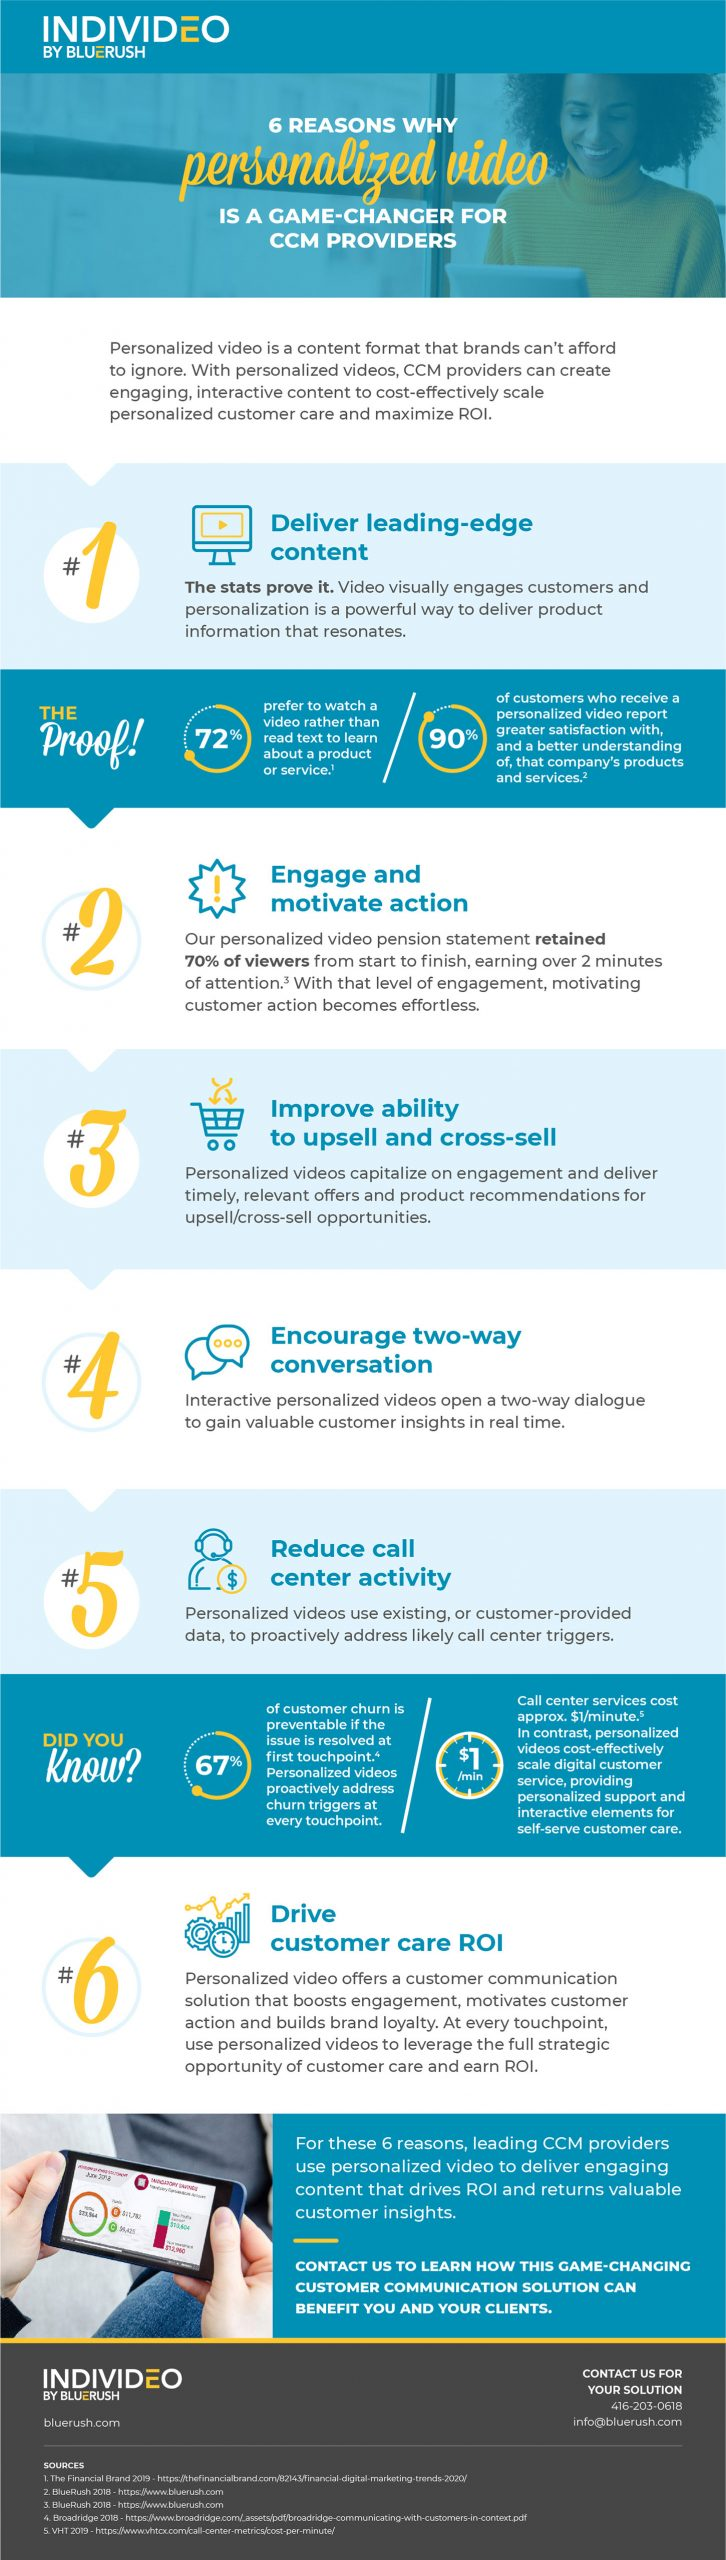 Personalized Video is a GameChanger for CCM Providers #infographic